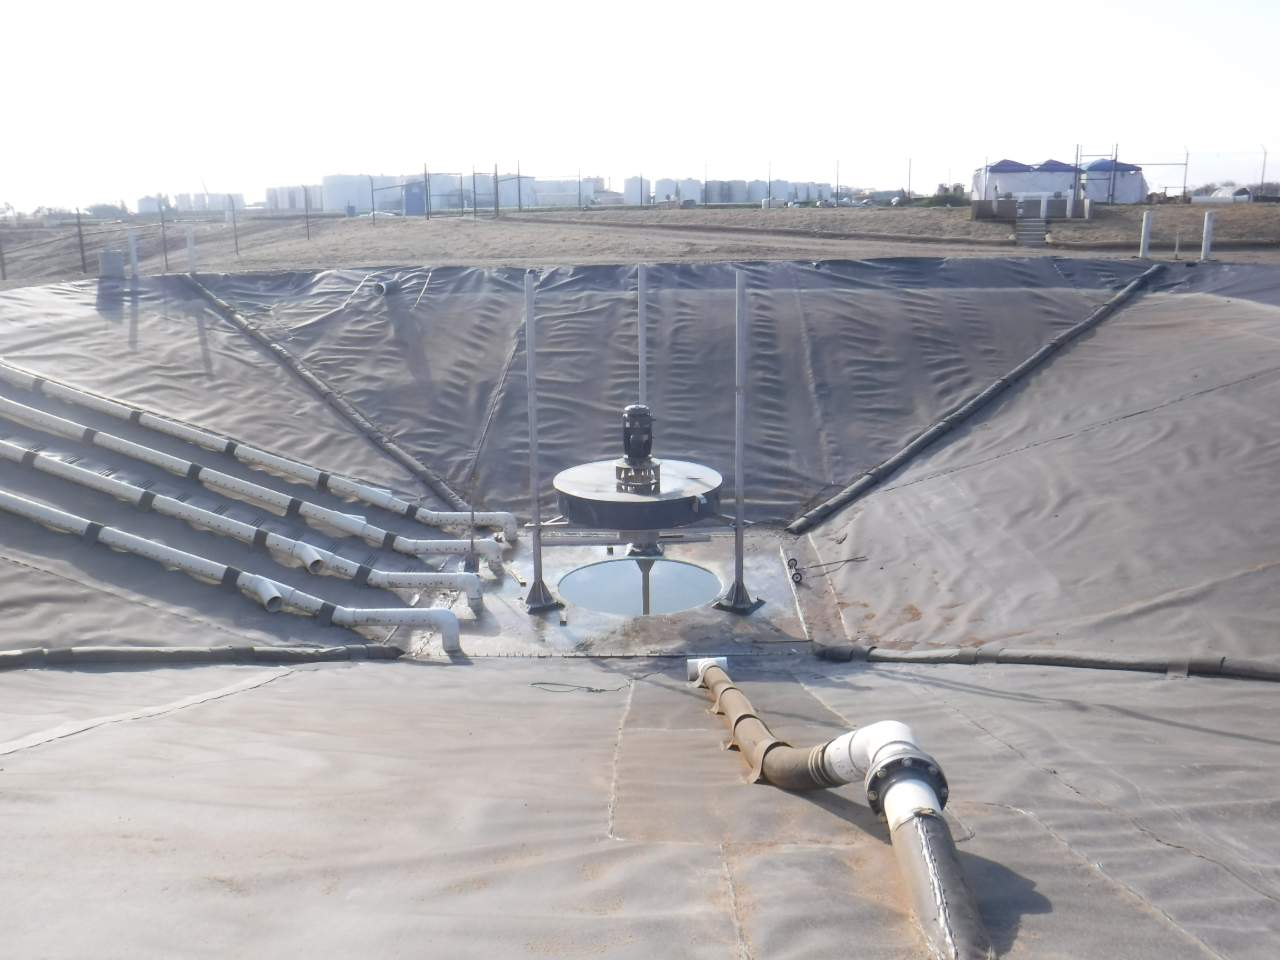 CA Winery Re-uses 80 Million Gallons of Process Water To Irrigate Crops